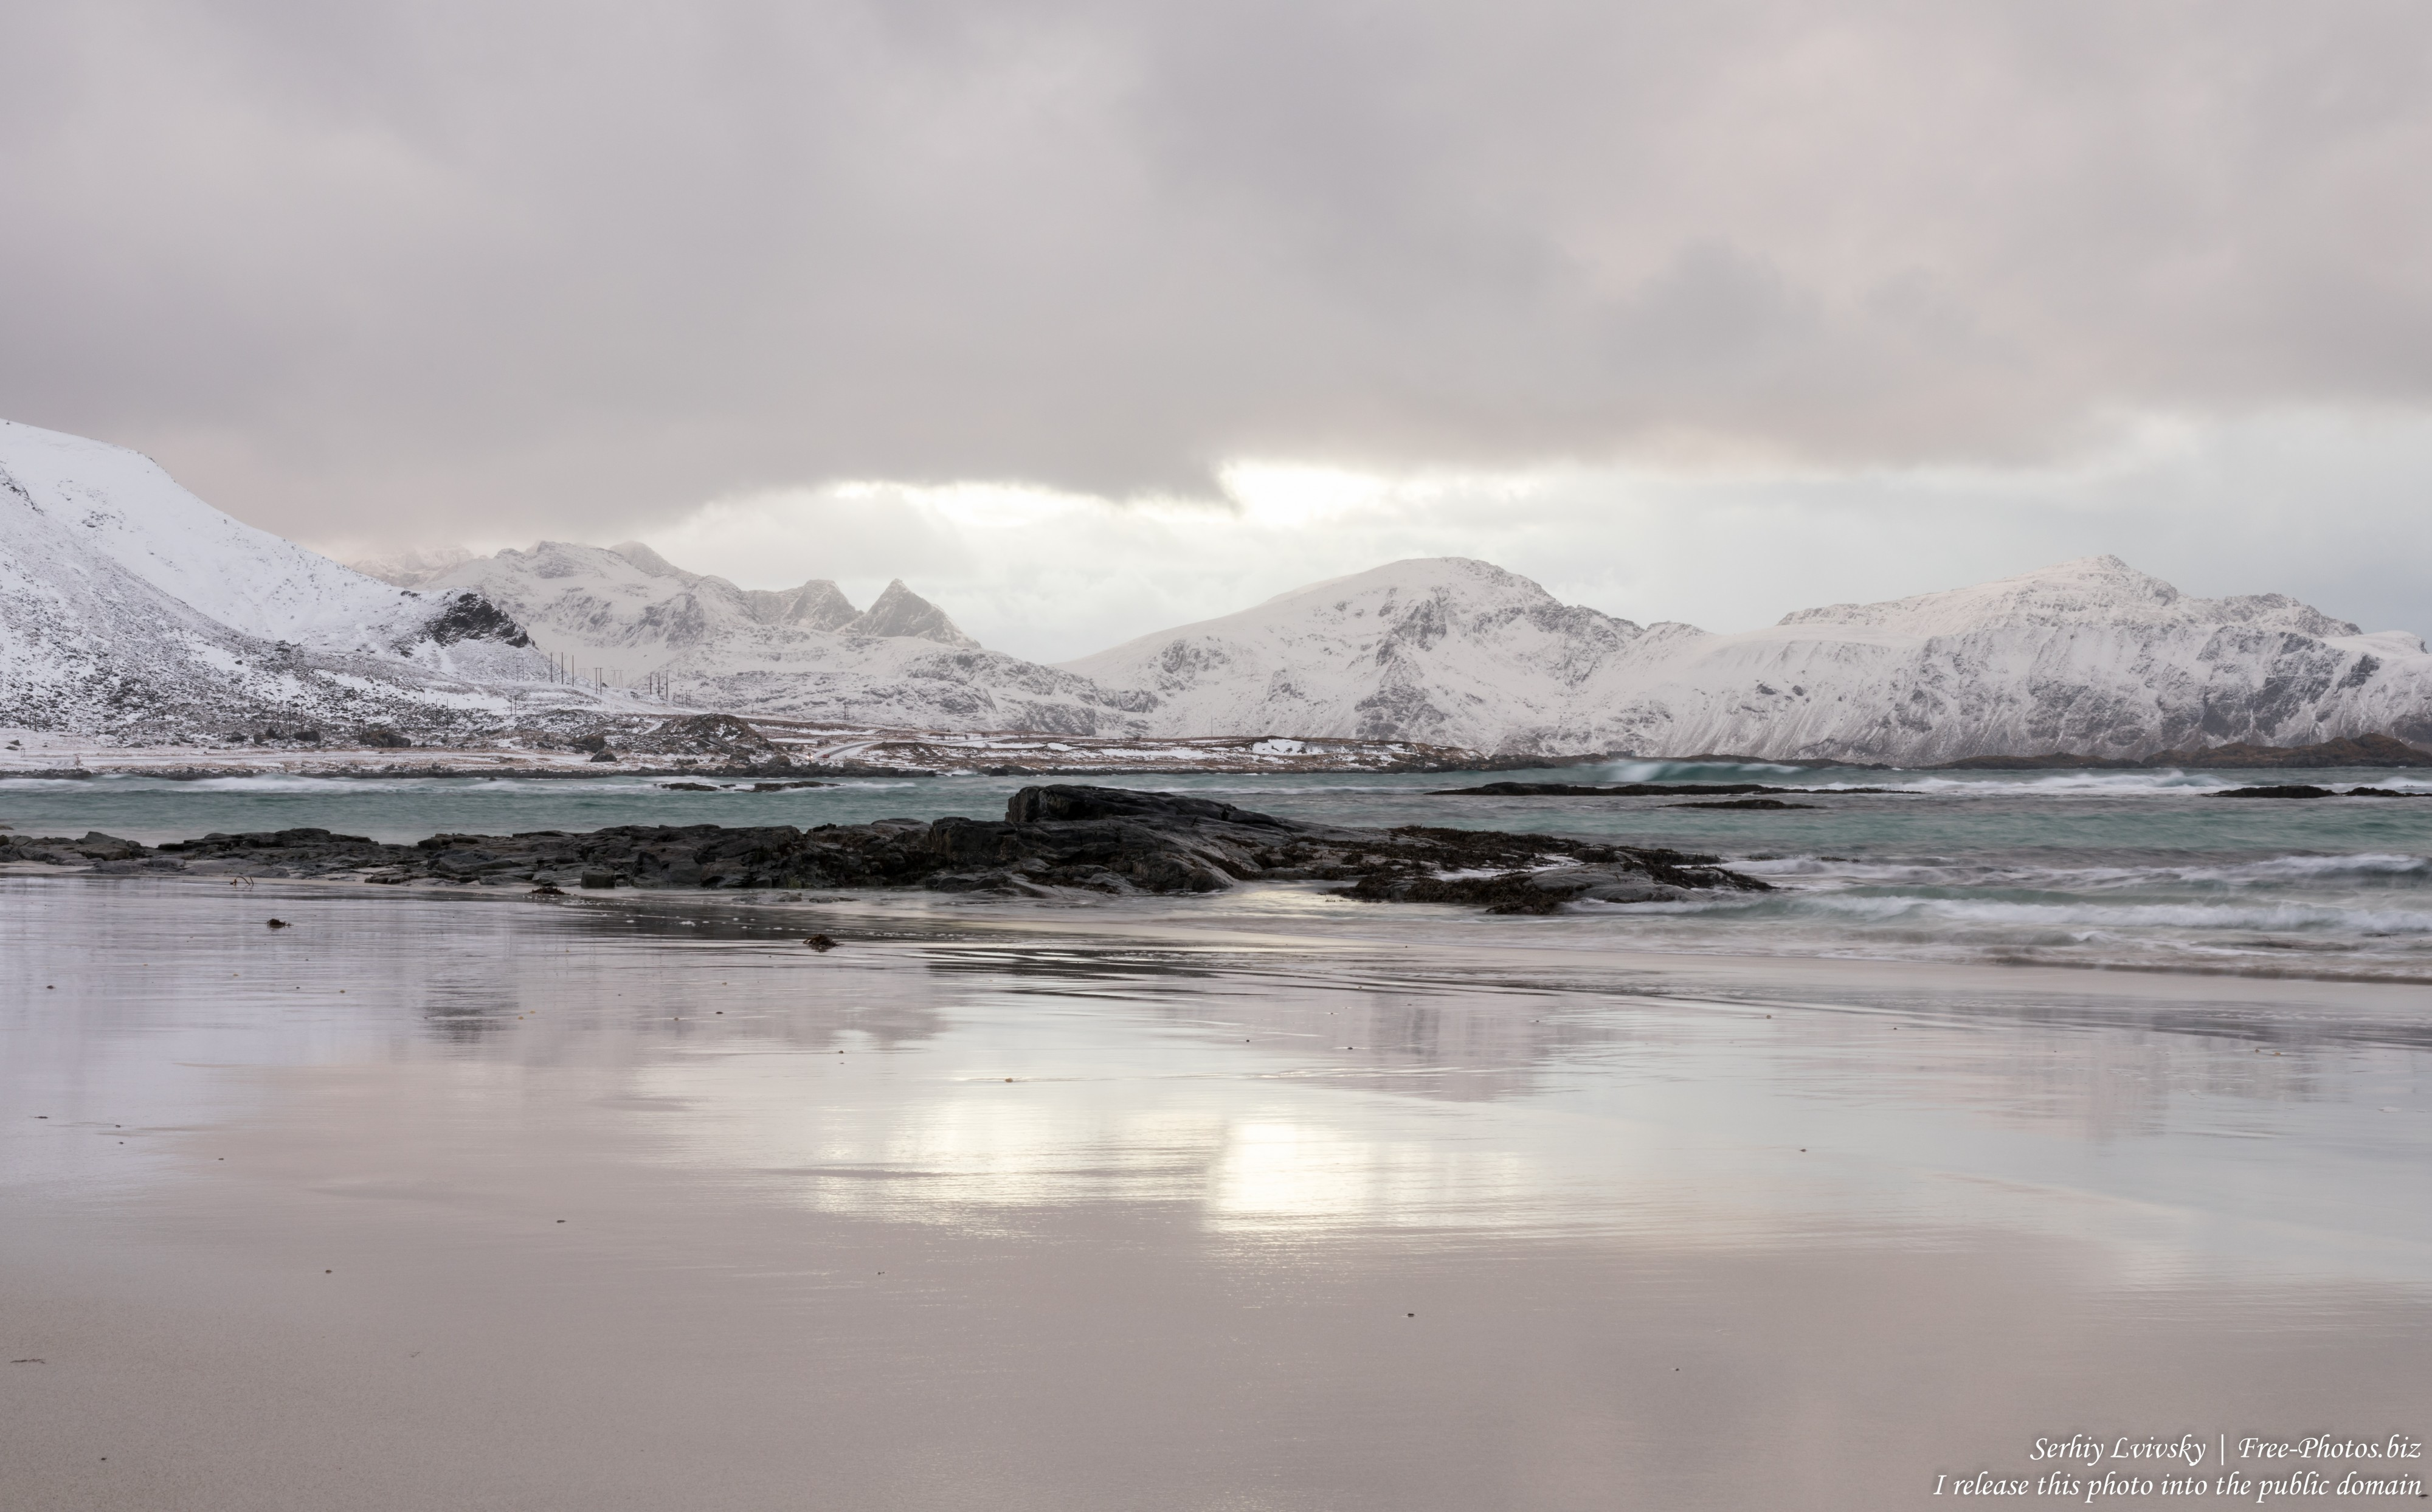 Skagsanden beach, Norway, photographed in February 2020 by Serhiy Lvivsky, picture 6